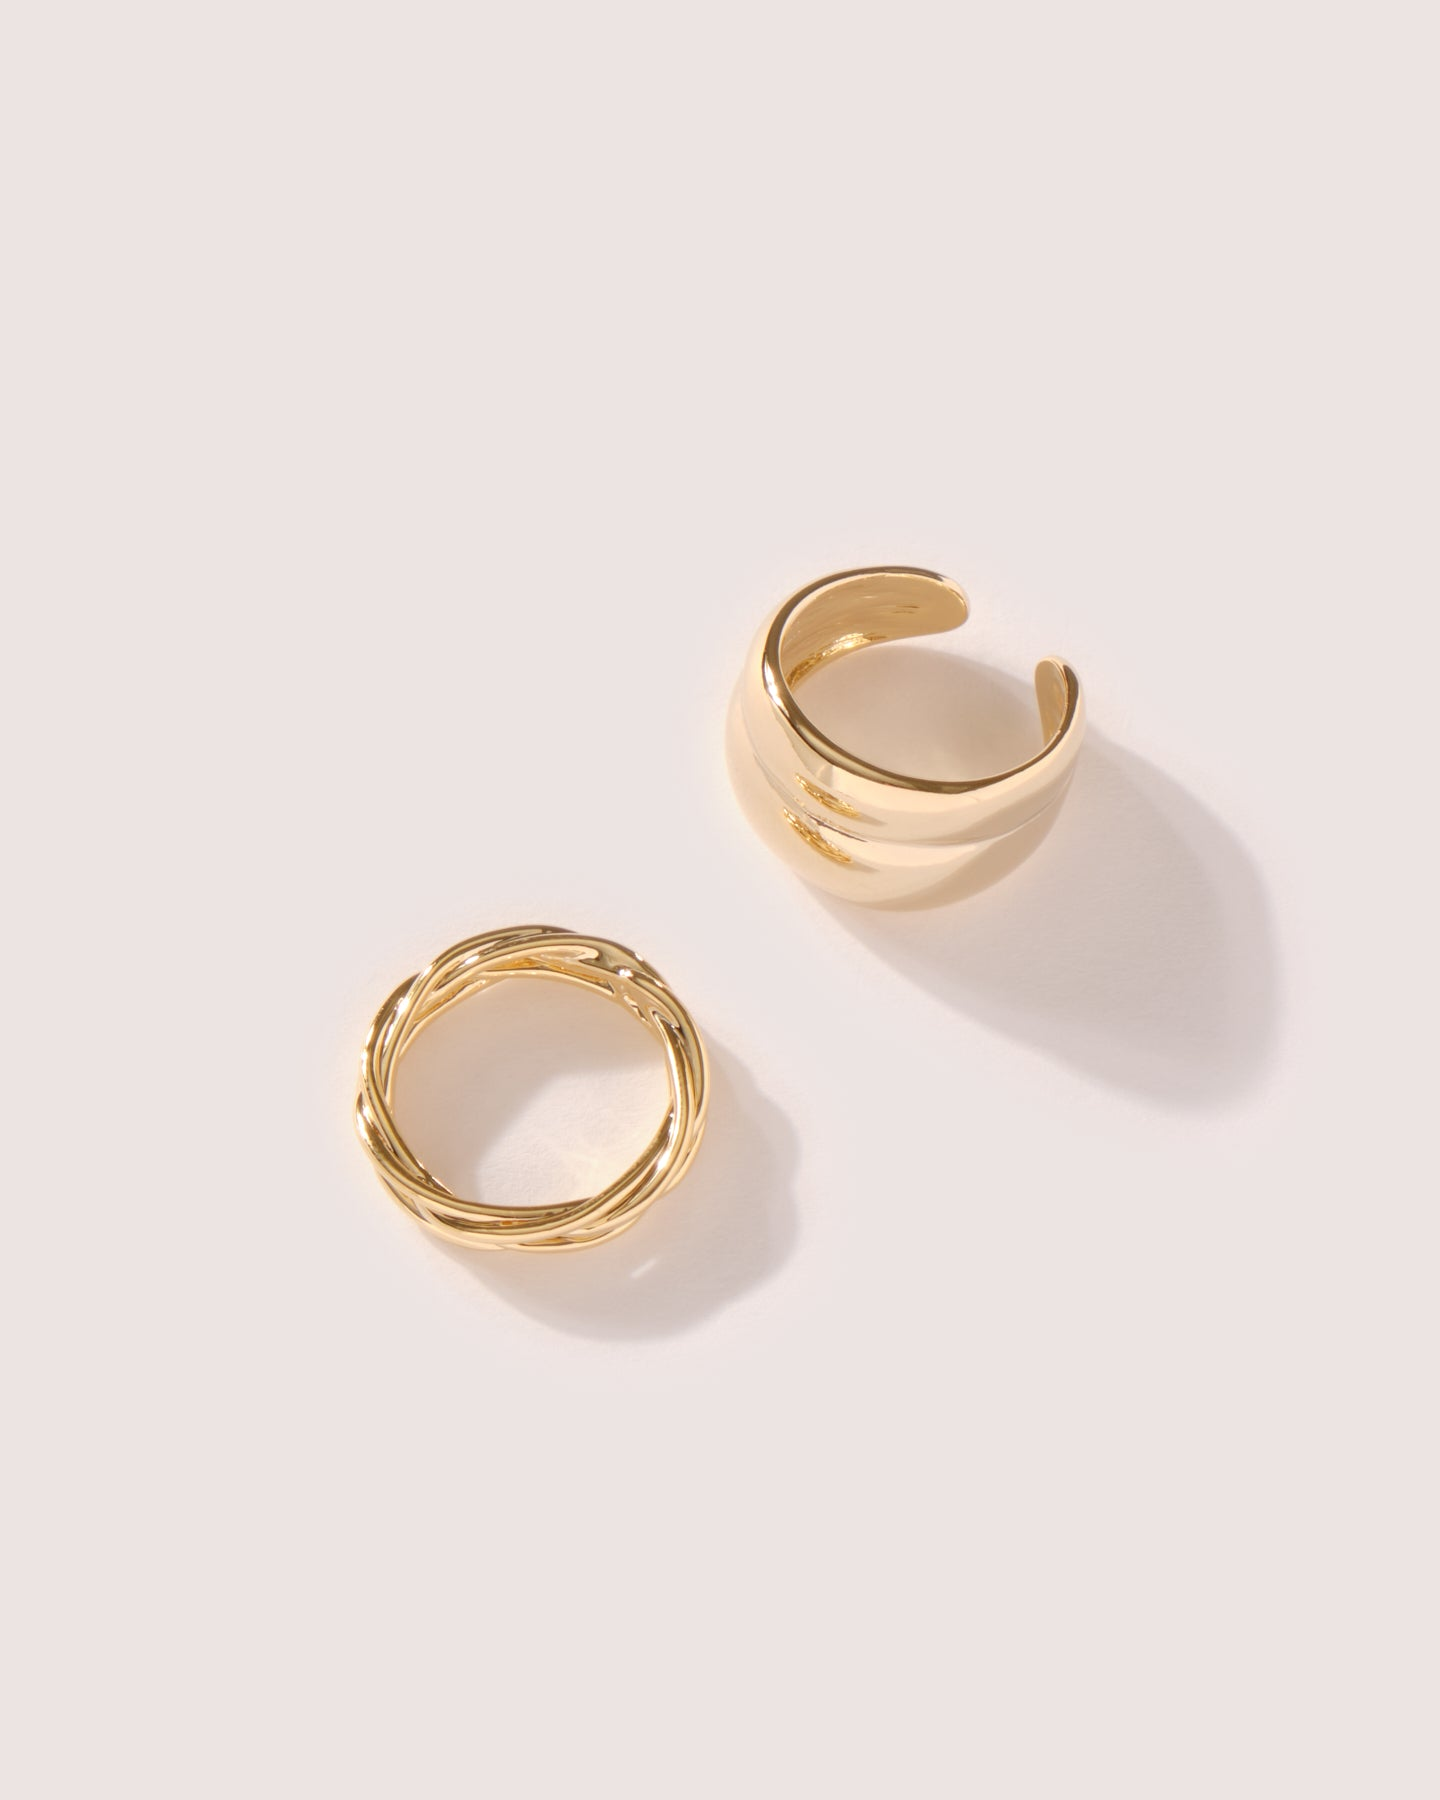 SWAY RING SET